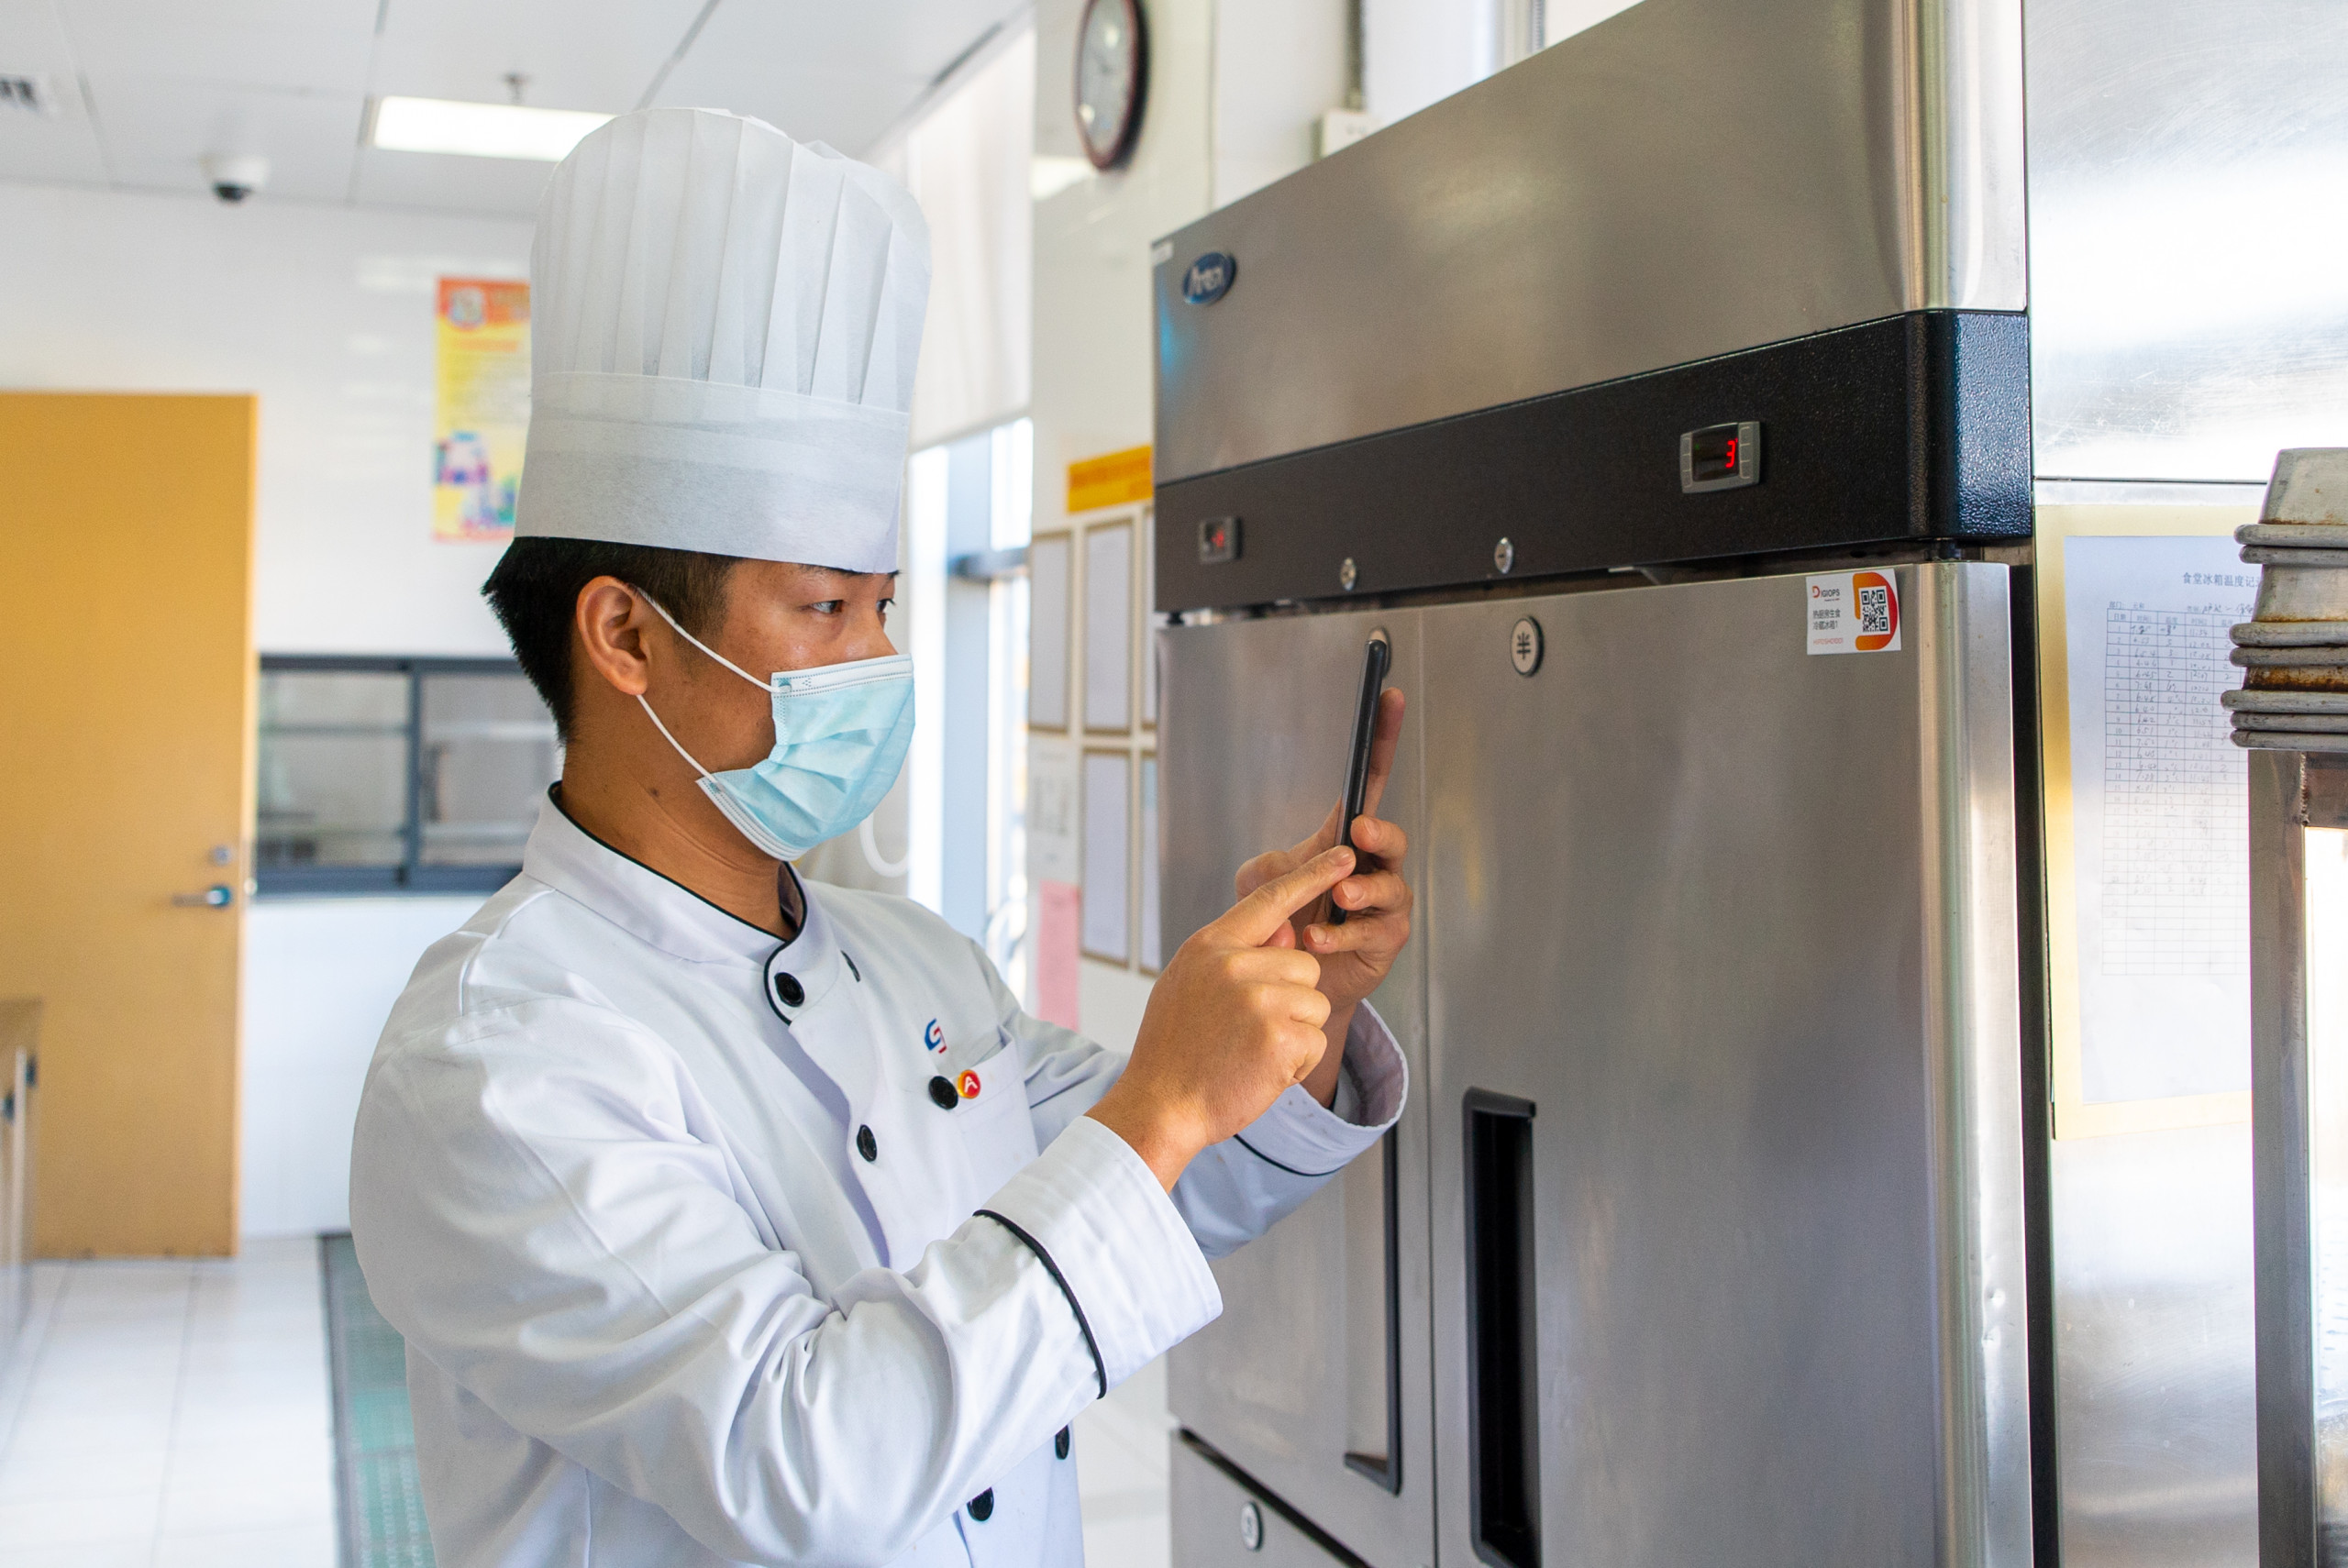 Aden Group digitalized IFM food service DigiOps app at Suzhou Rail Transit